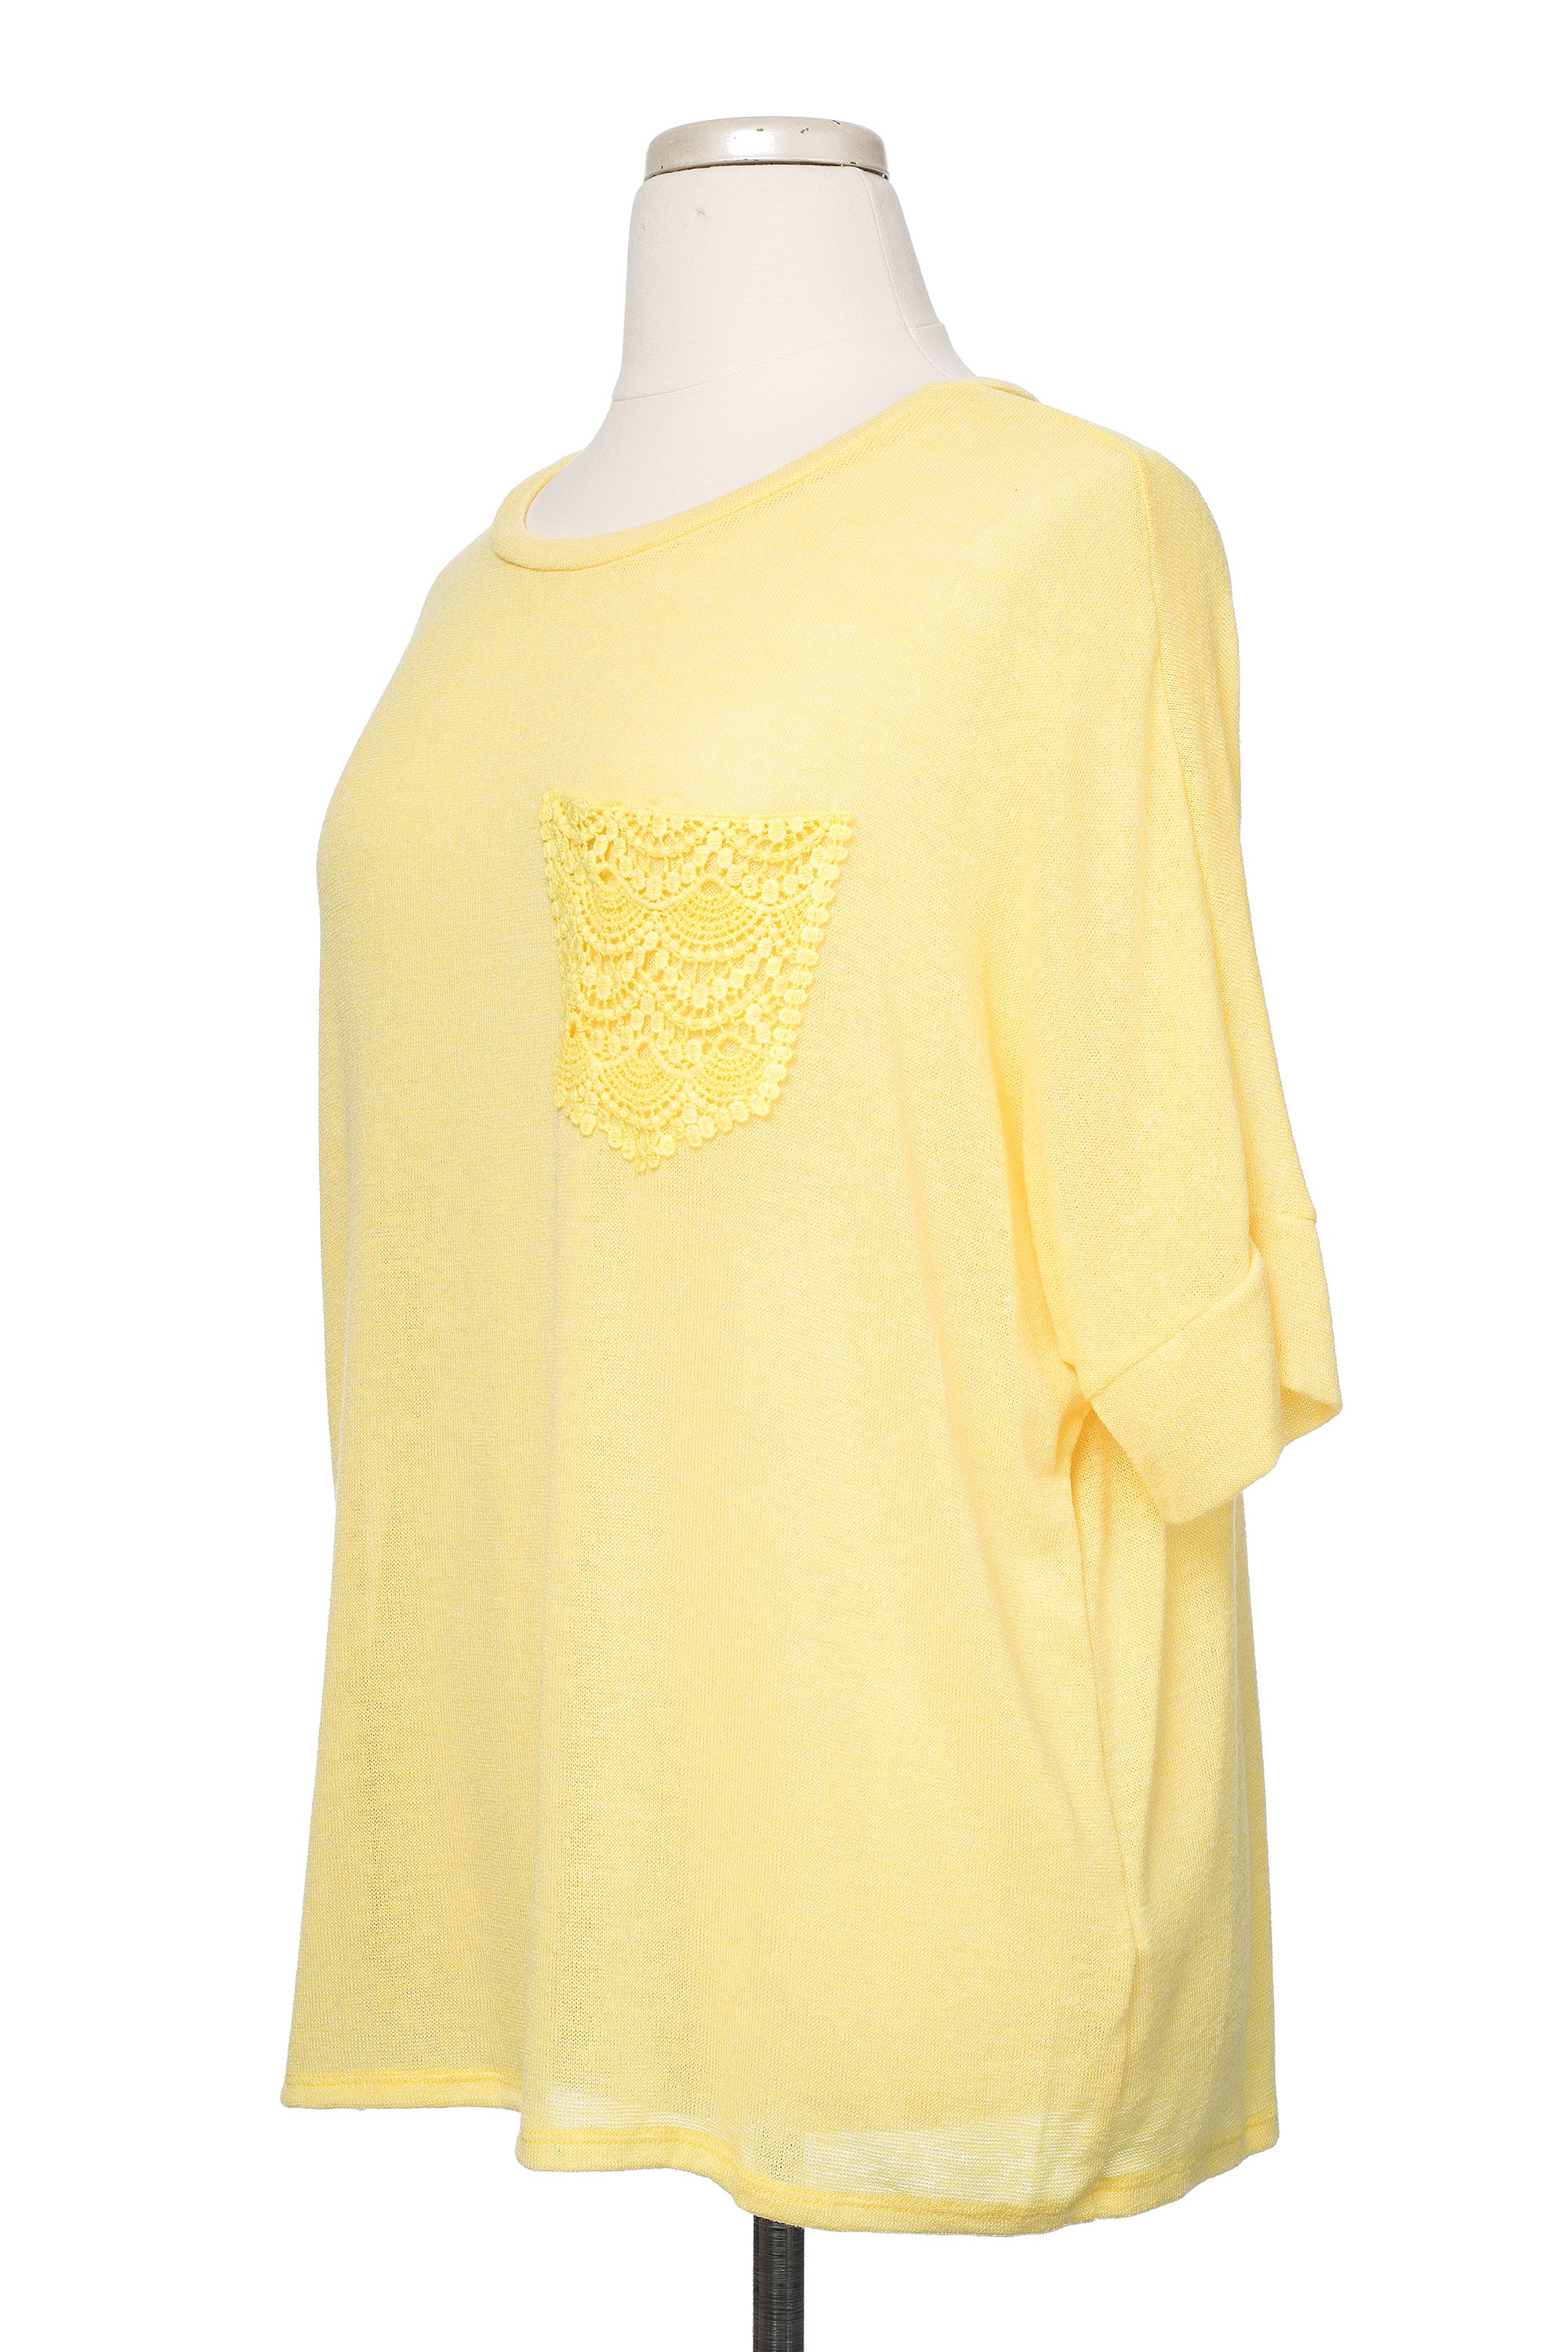 Type 1 Sublime Top in Yellow